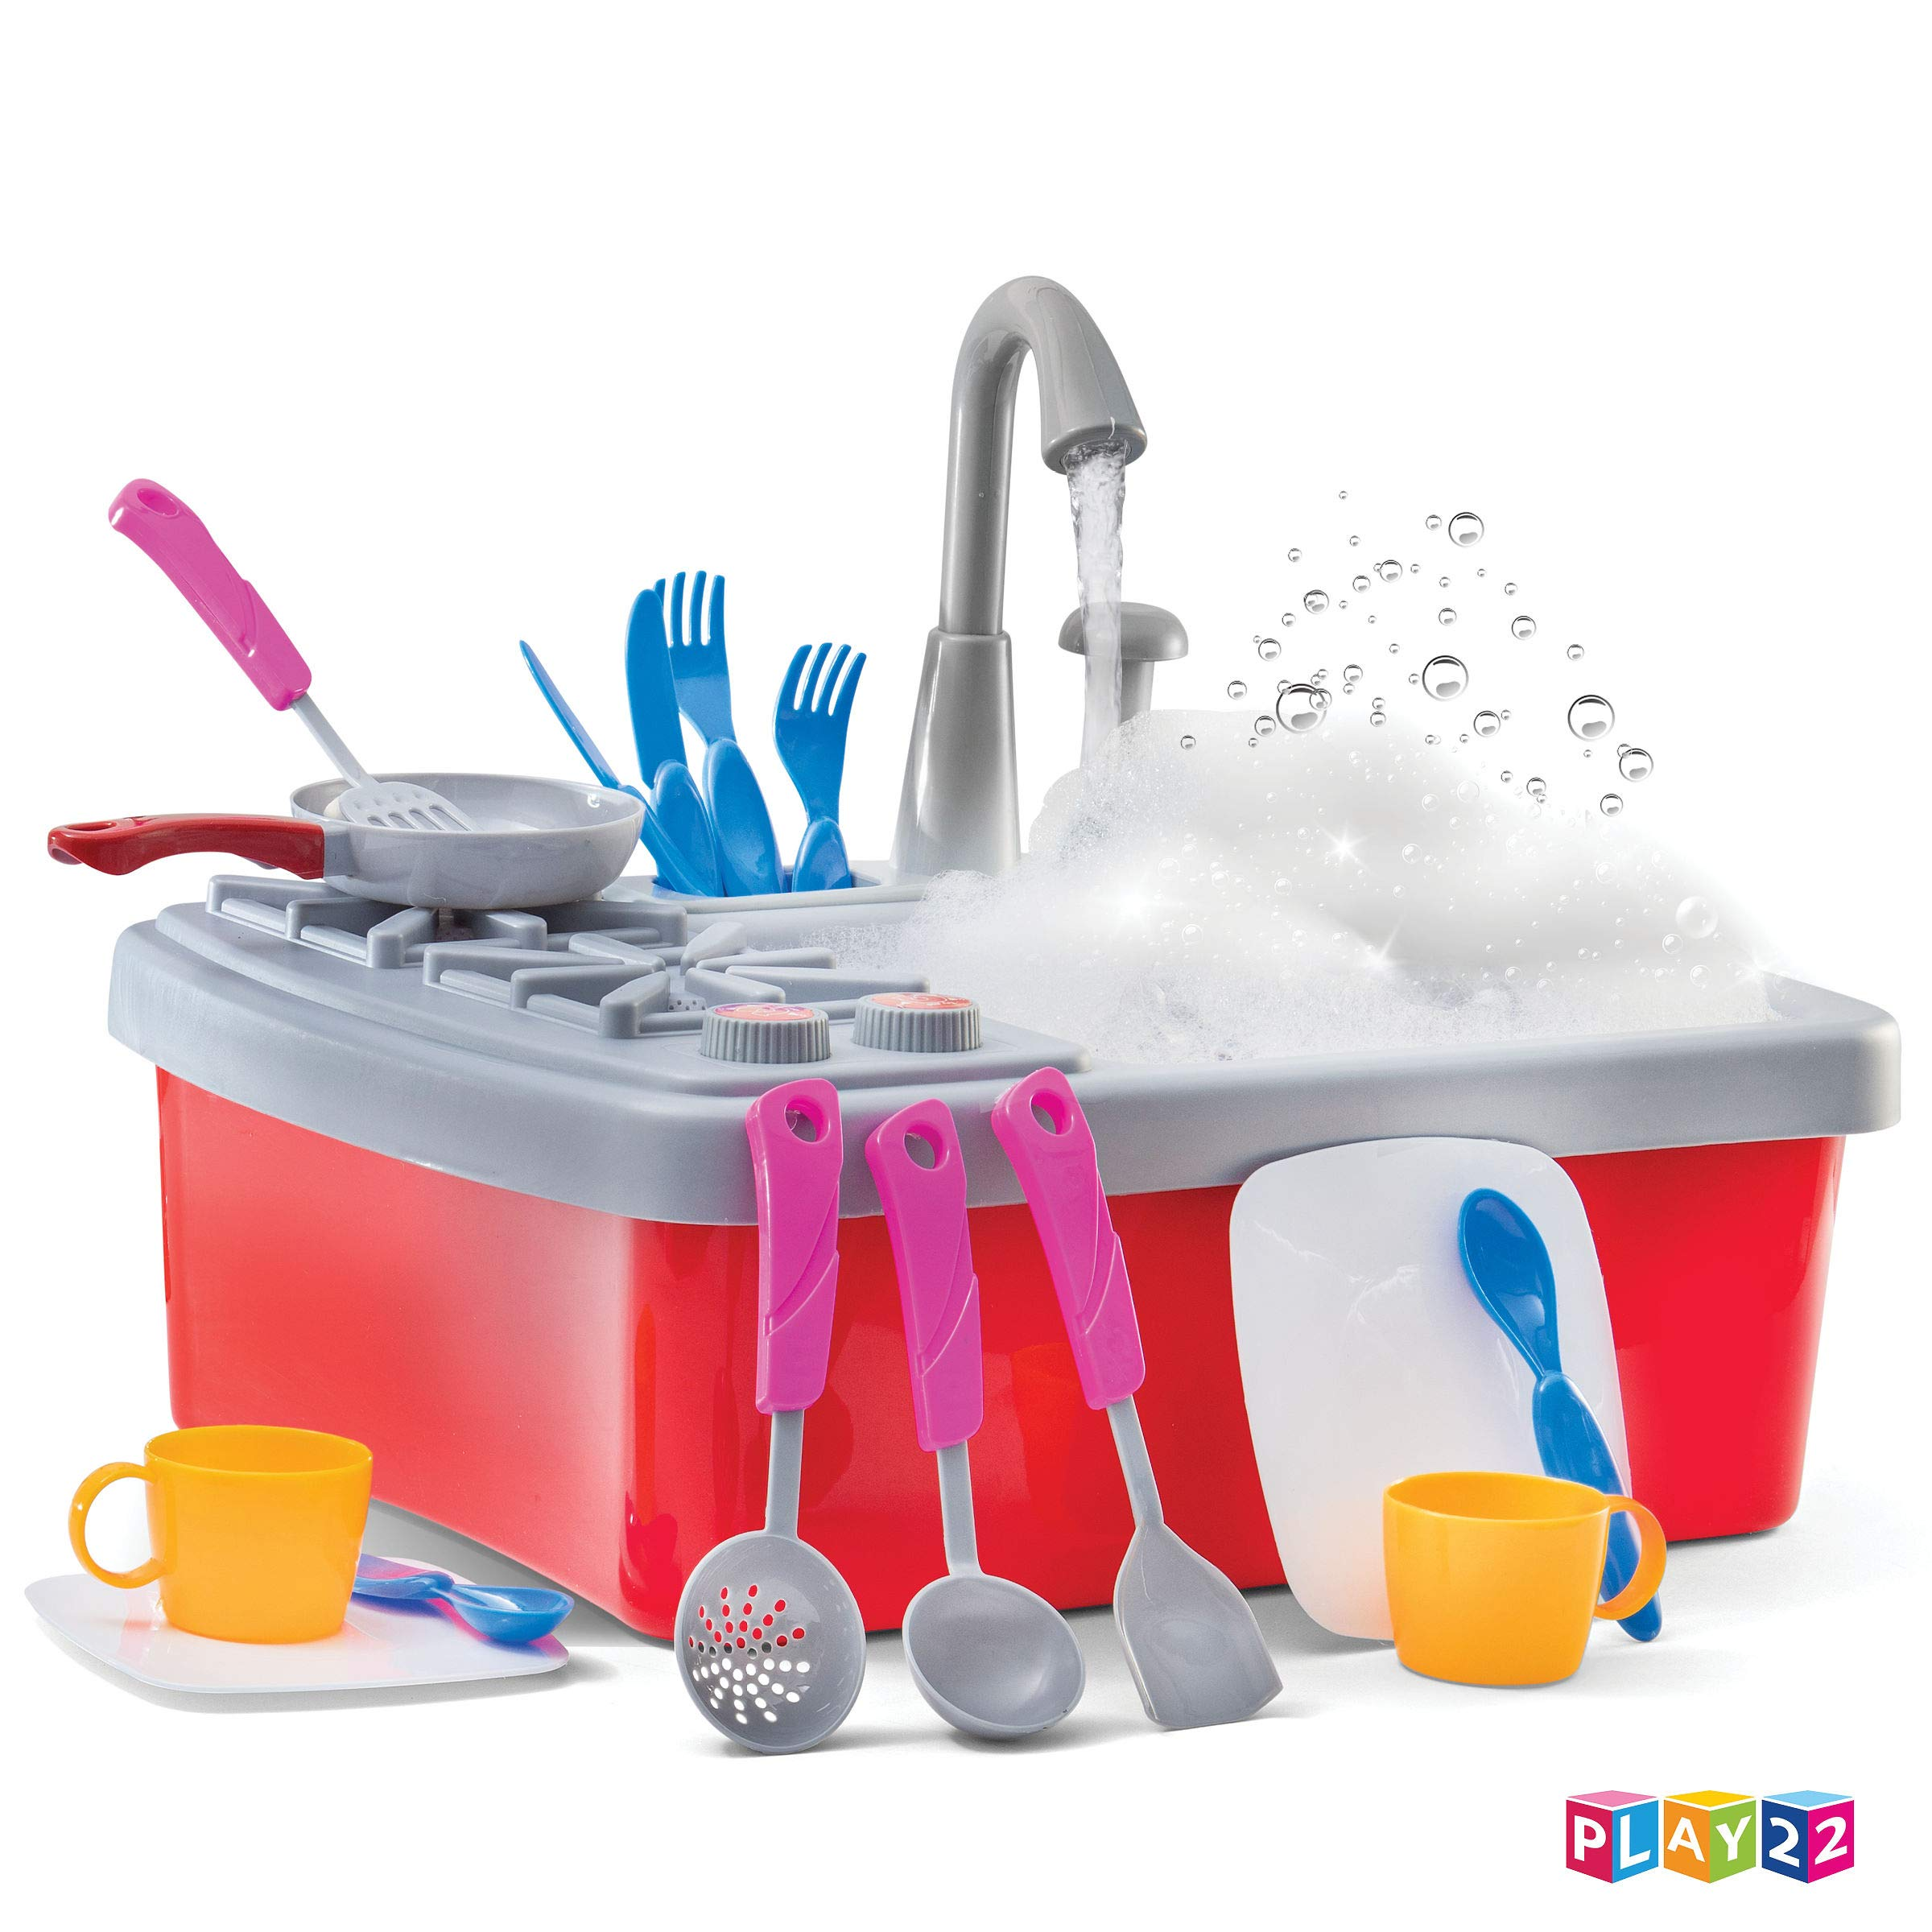 Play22 Kitchen Sink Toy 17 Set - Play Sink Play House Pretend Toy Kitchen Sink with Running Water - Kids Toy Sink with Real Faucet & Drain, Dishes, Utensils & Stove - Kitchen Toys for Toddlers & Kids by Play22